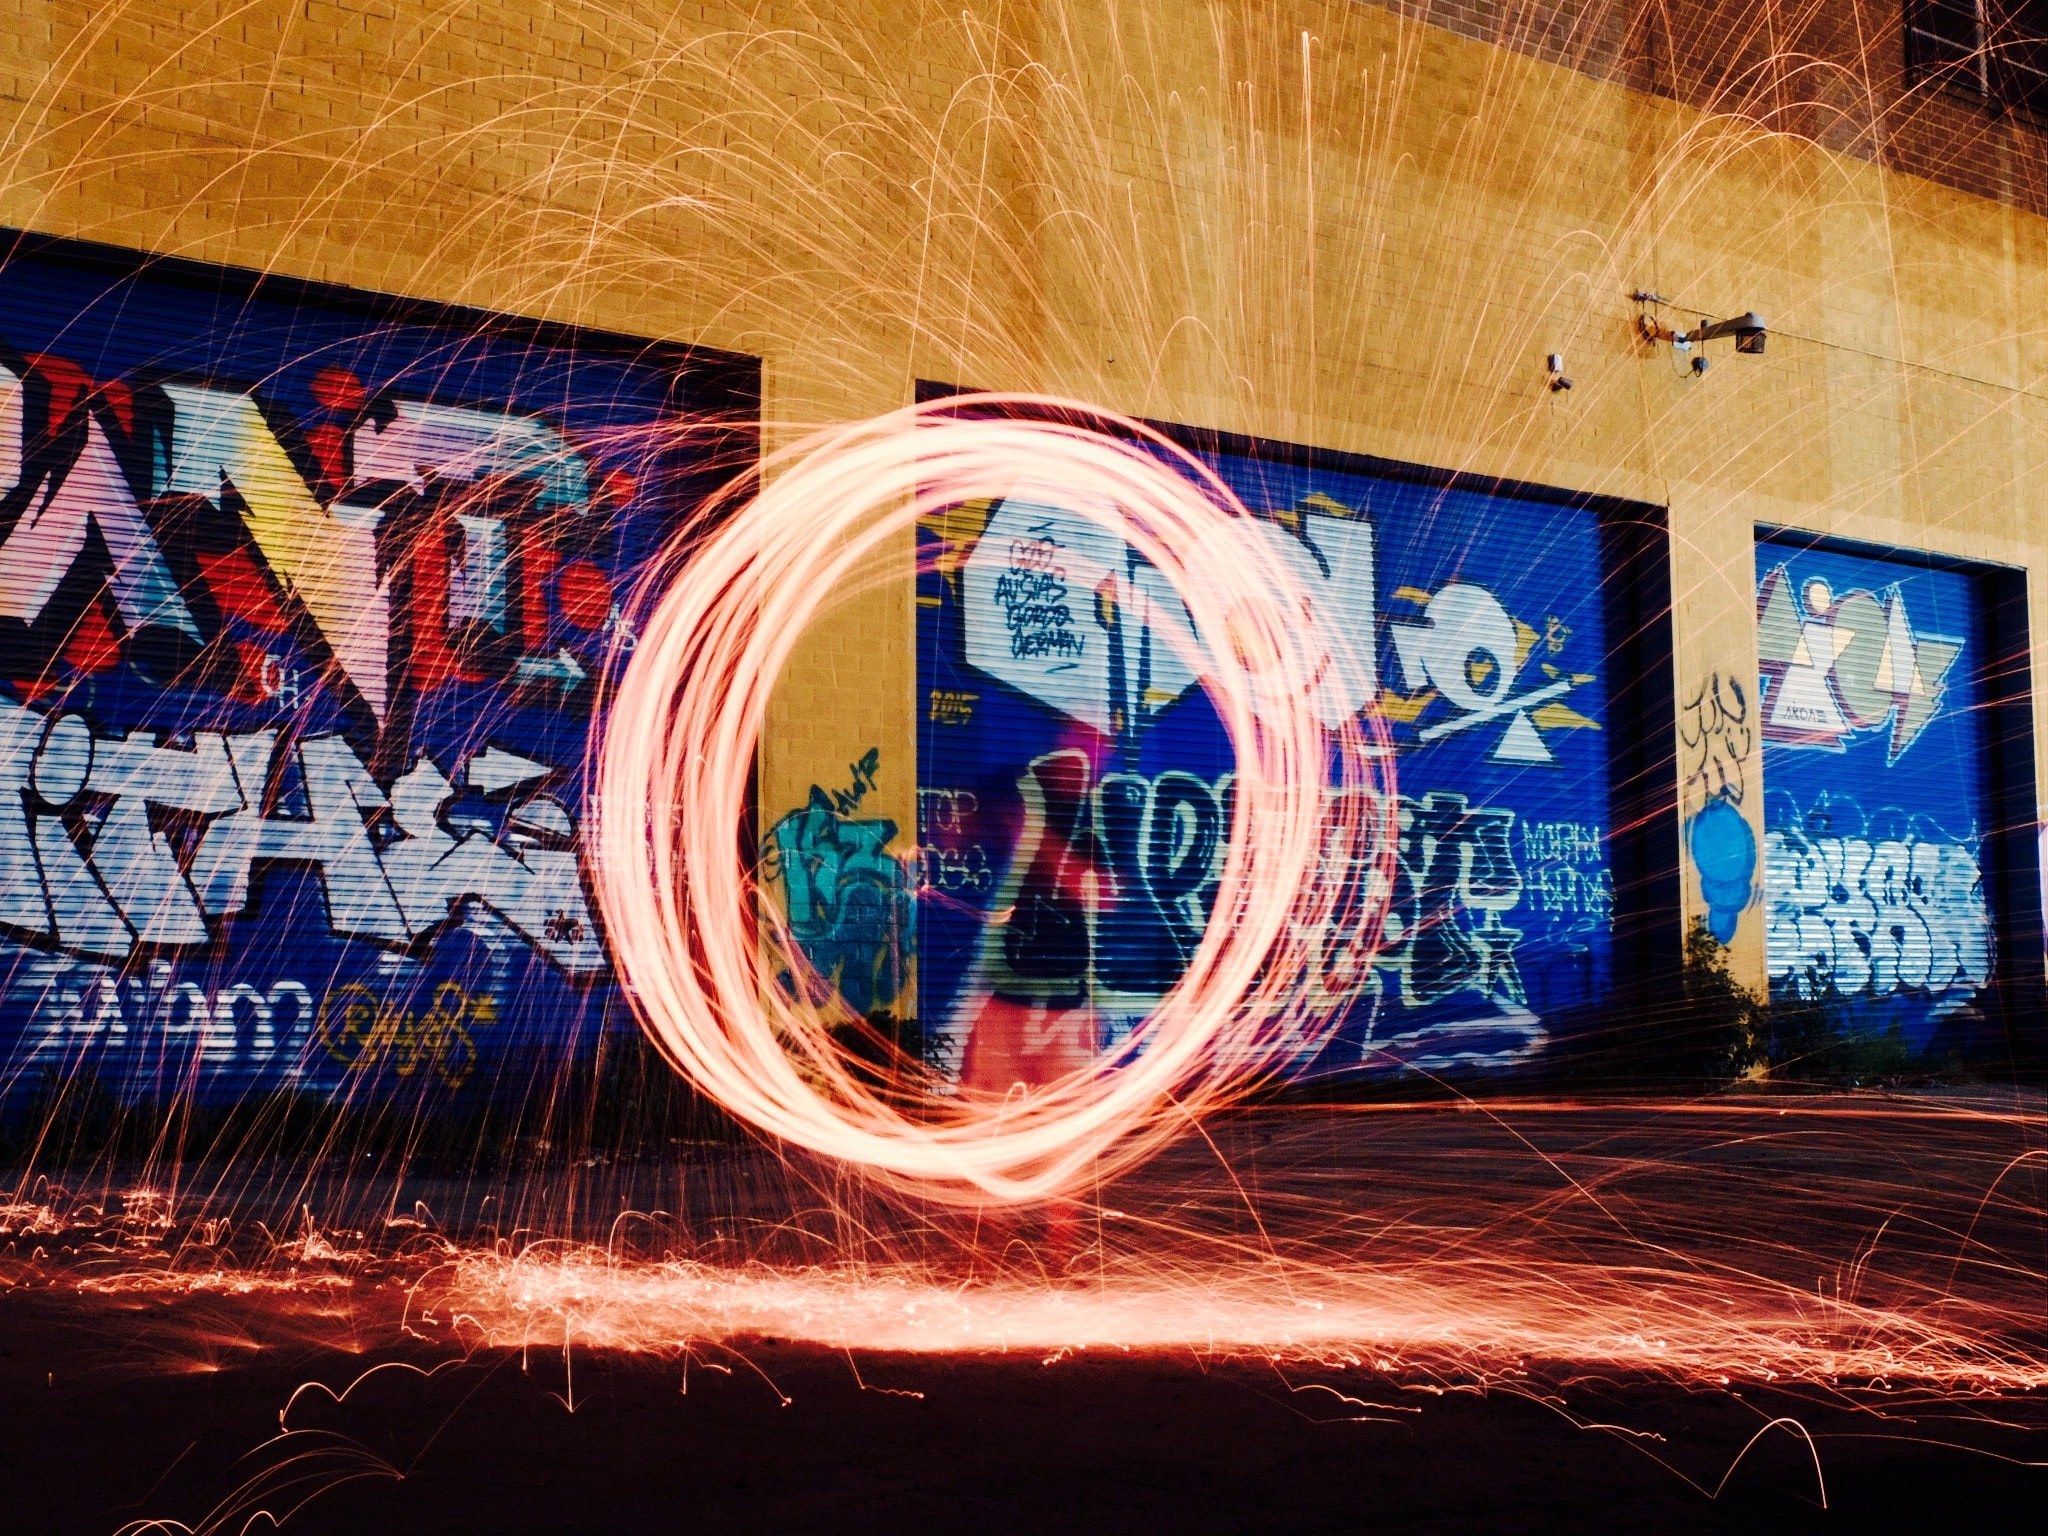 A firework light painting shot with wire wool taken in front of a building marked in graffiti